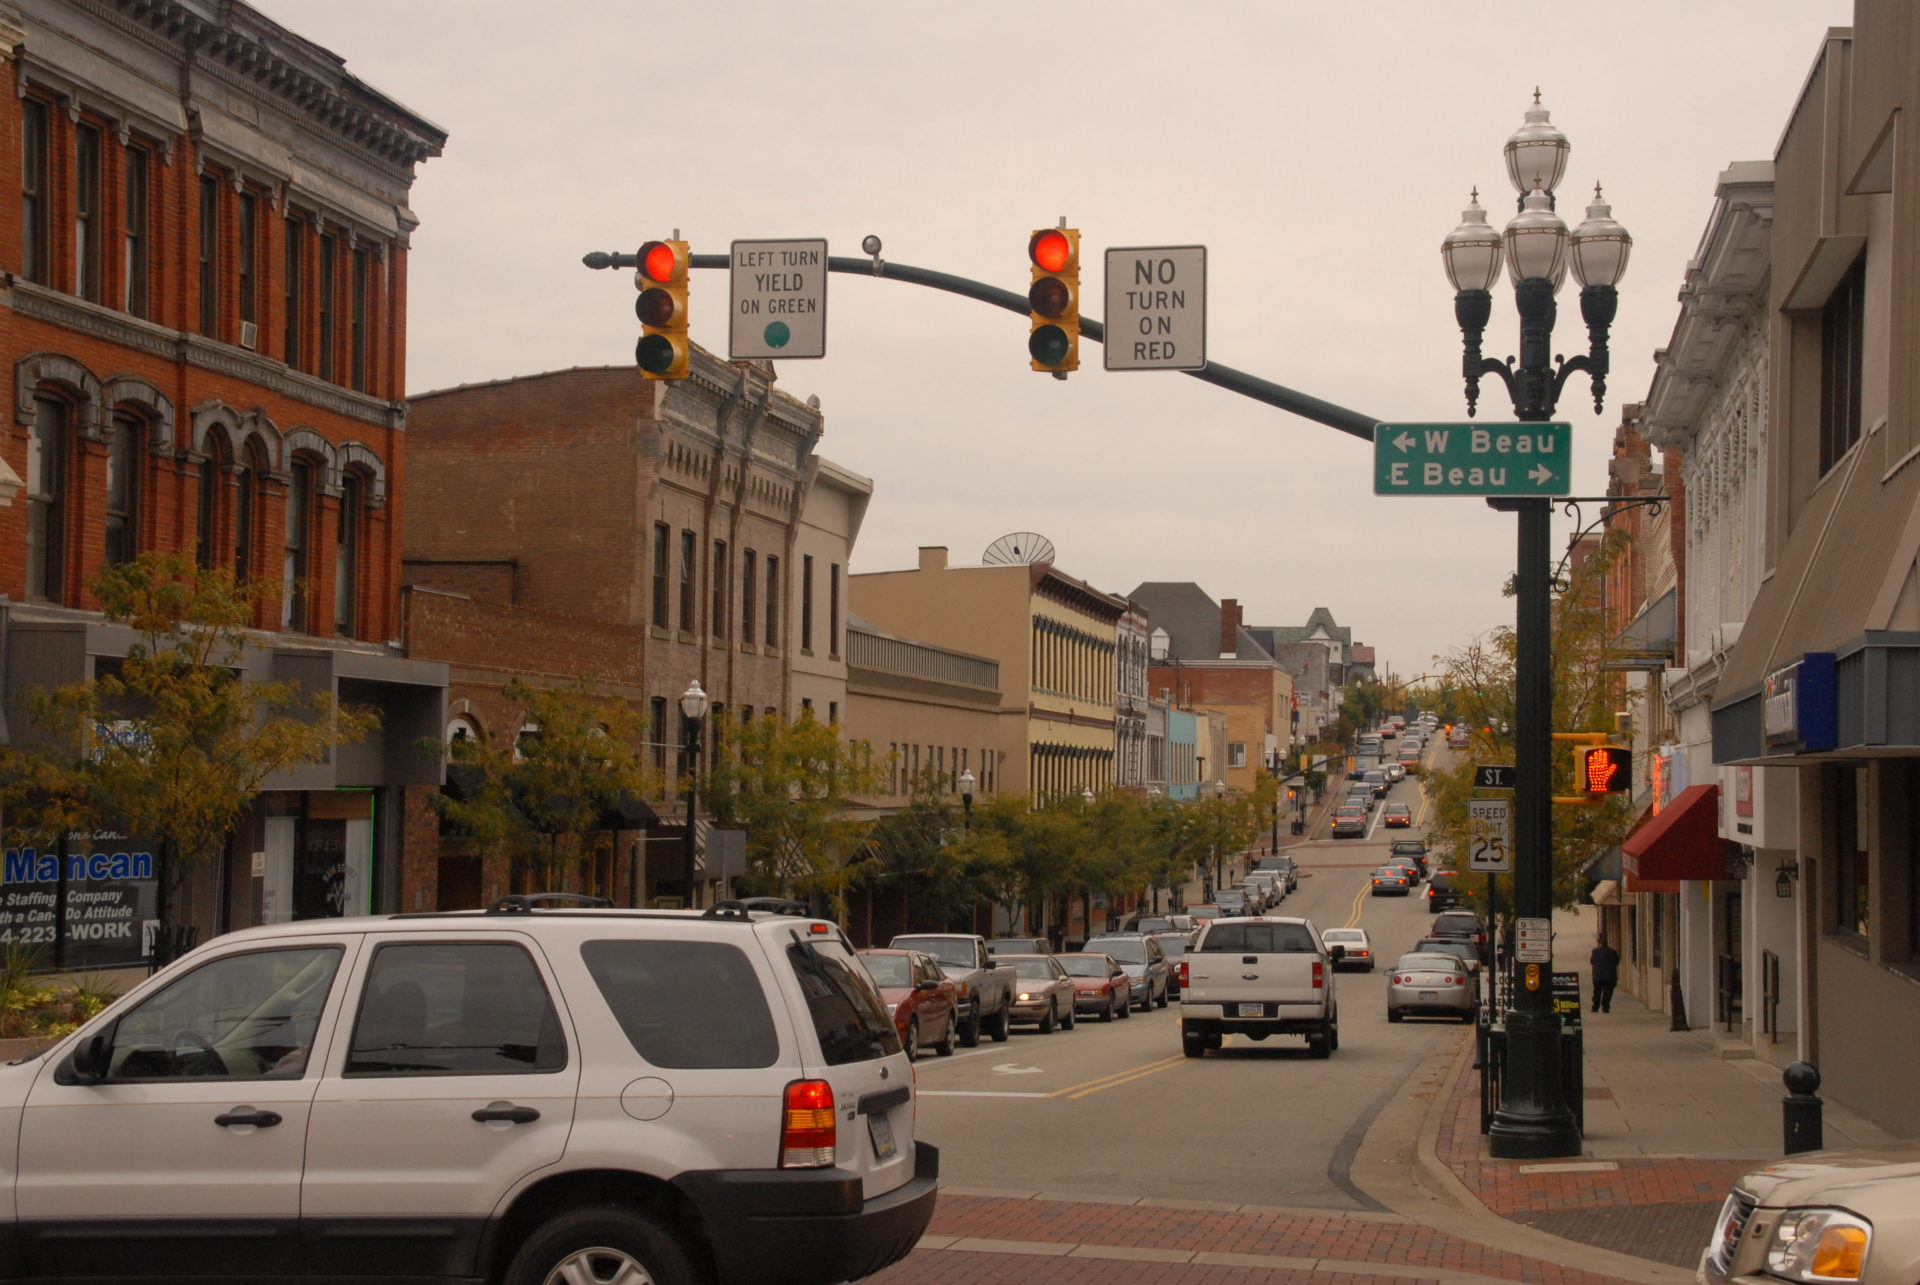 Downtown Washington PA from the intersection of East and West Beau Street